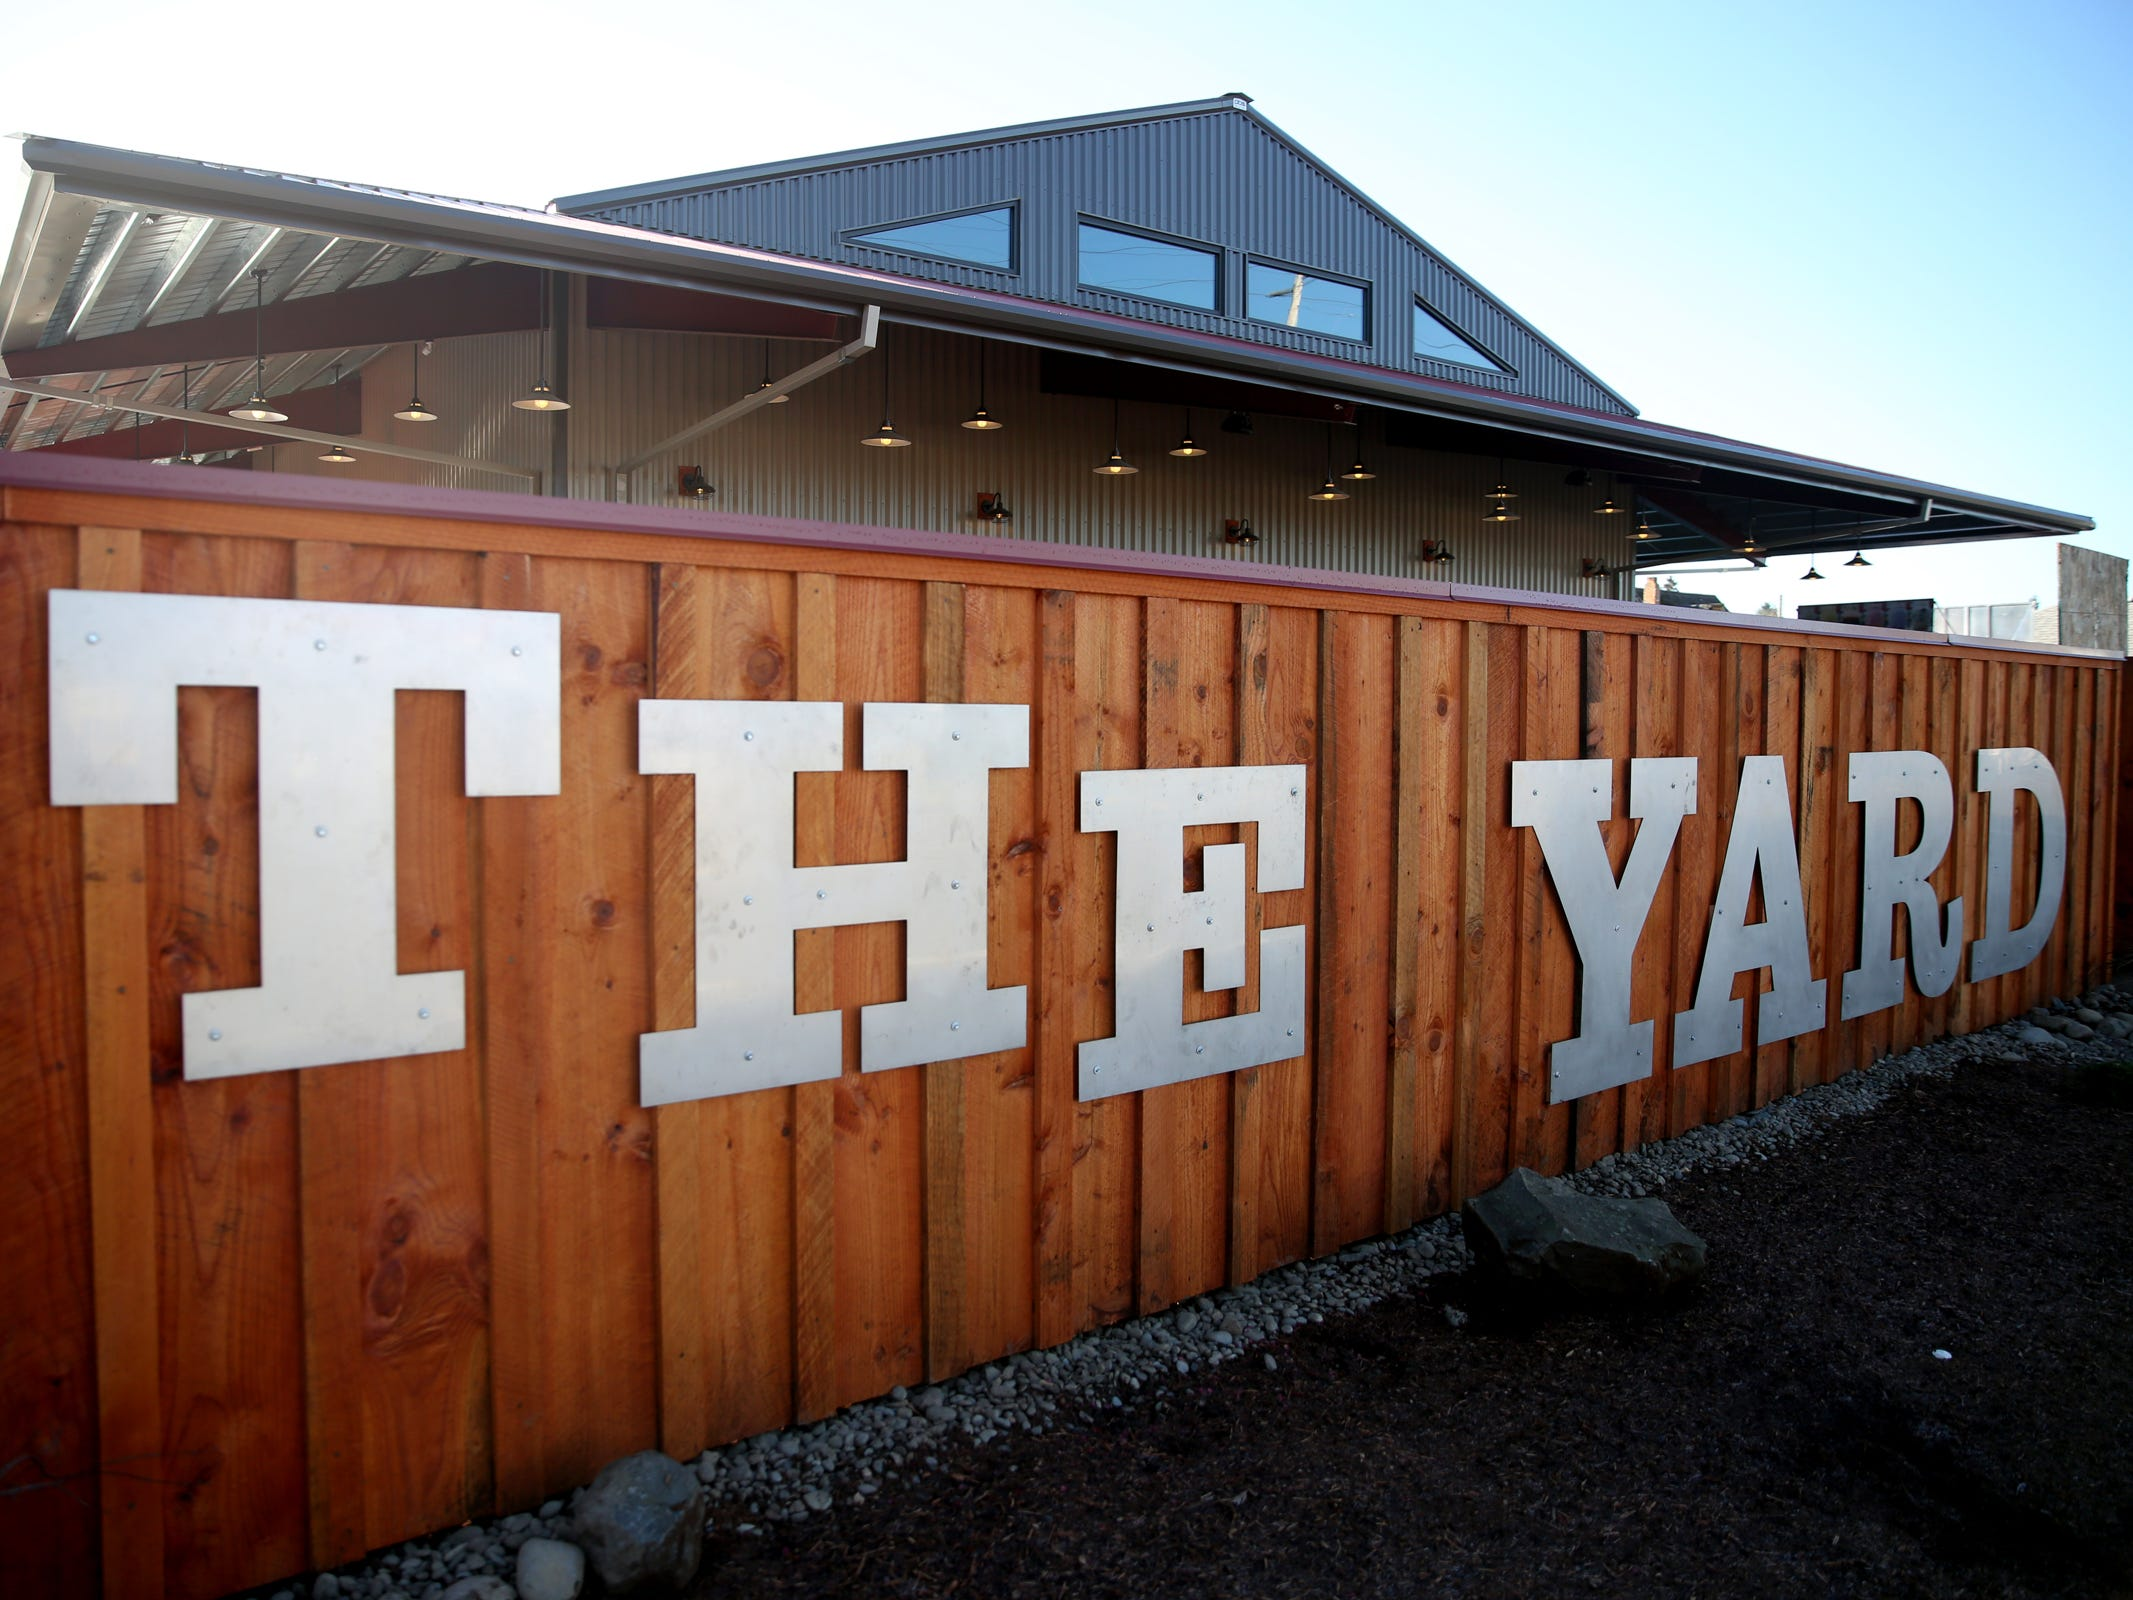 The Yard Food Park as seen from State Street in Salem on Wednesday, Dec. 5, 2018. When it opens, The Yard will essentially be part coffee shop, part bar, part event space, and part food truck food court.